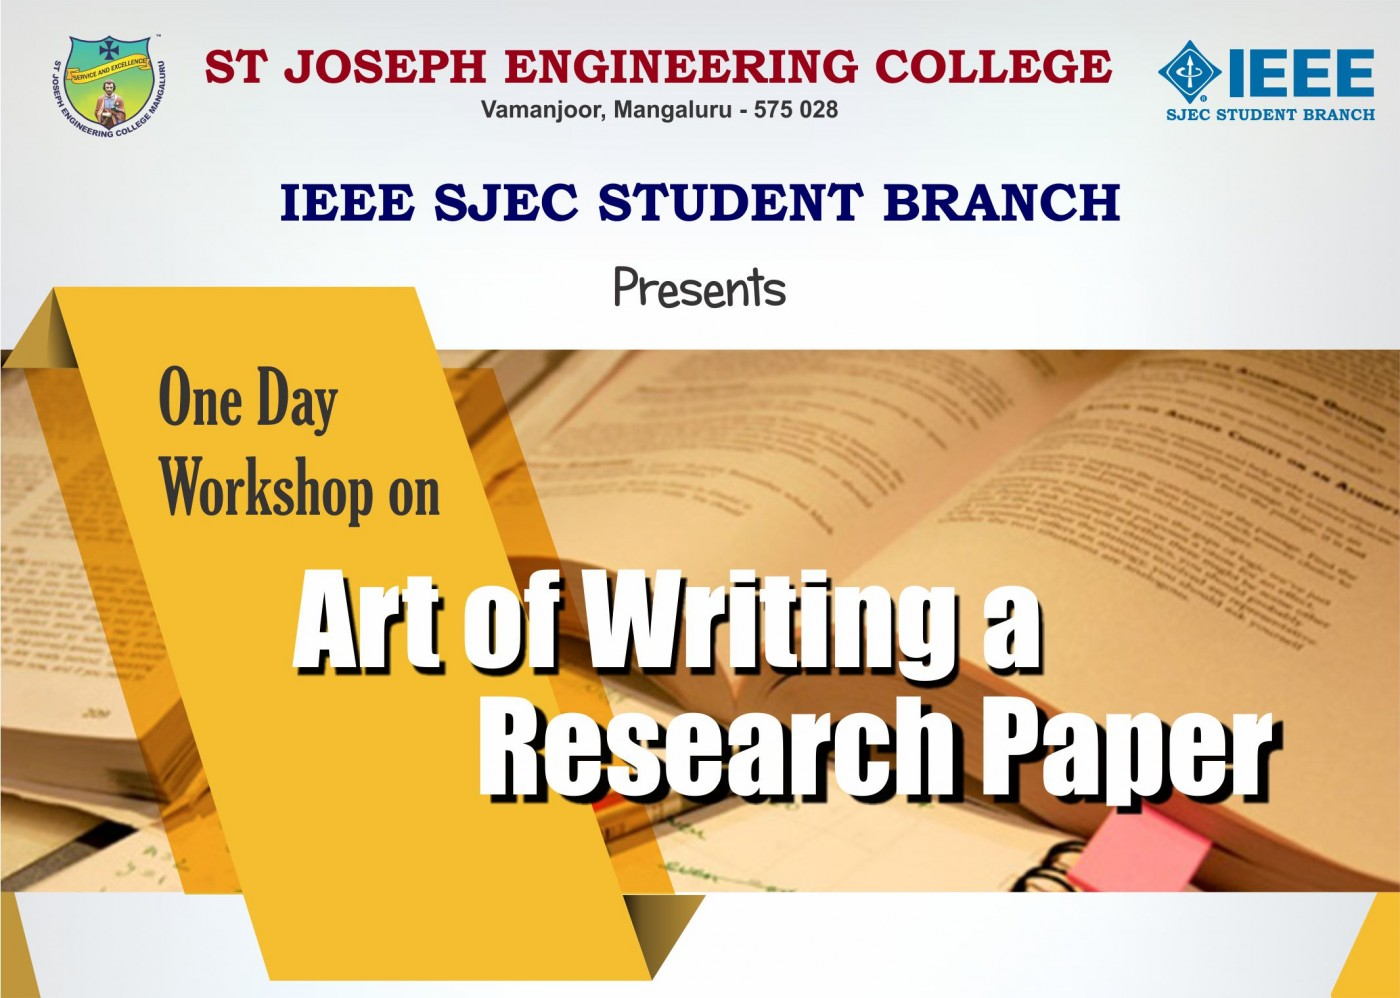 005 Research Paper About Writing Workshop Rare Skills Ppt Topics For College Articles On Creative 1400